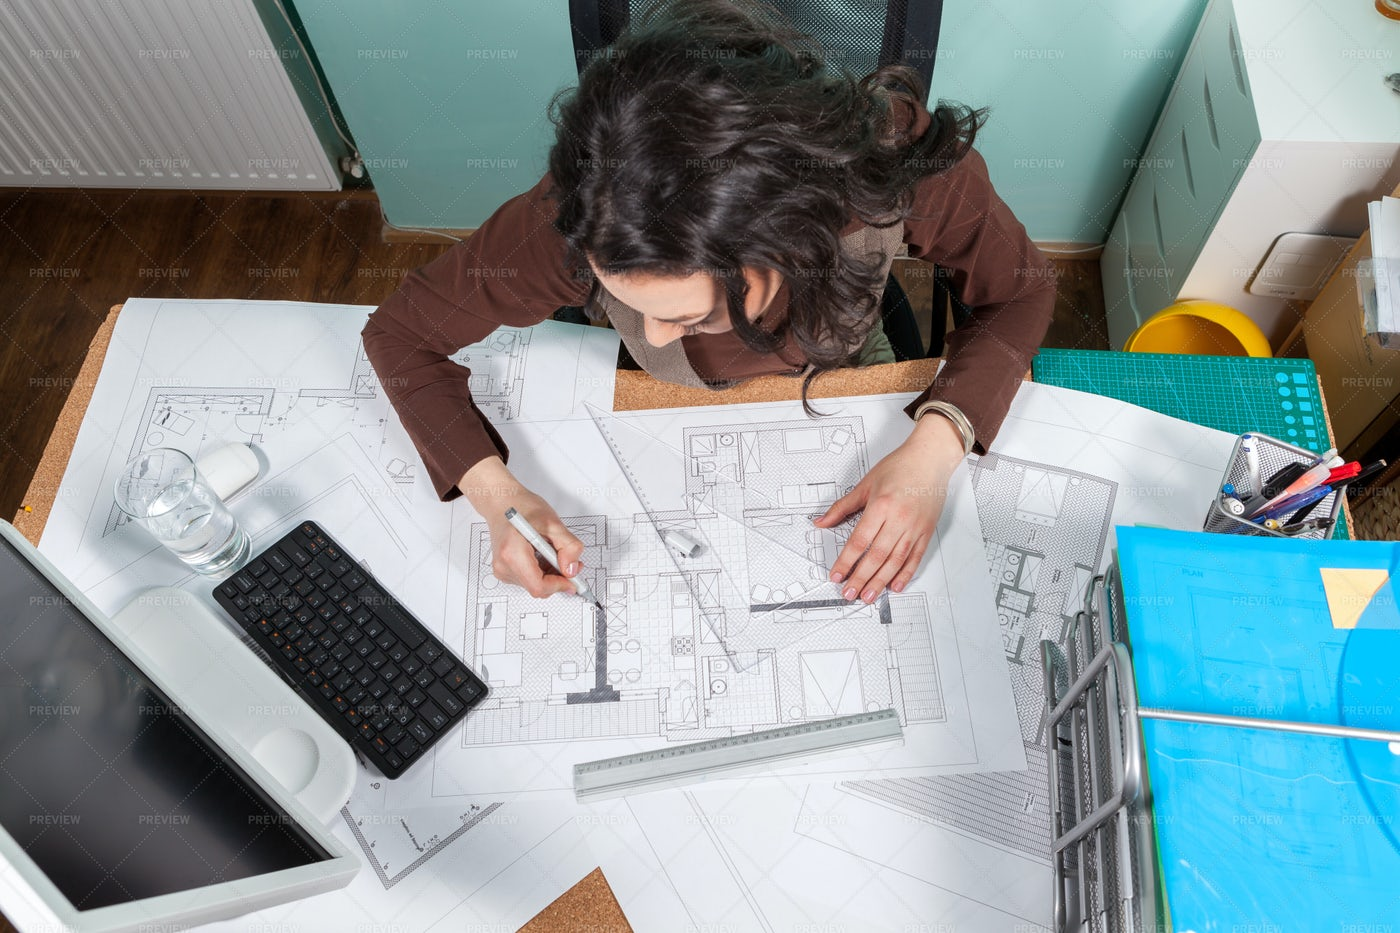 Architect Woman At Her Desk Working: Stock Photos